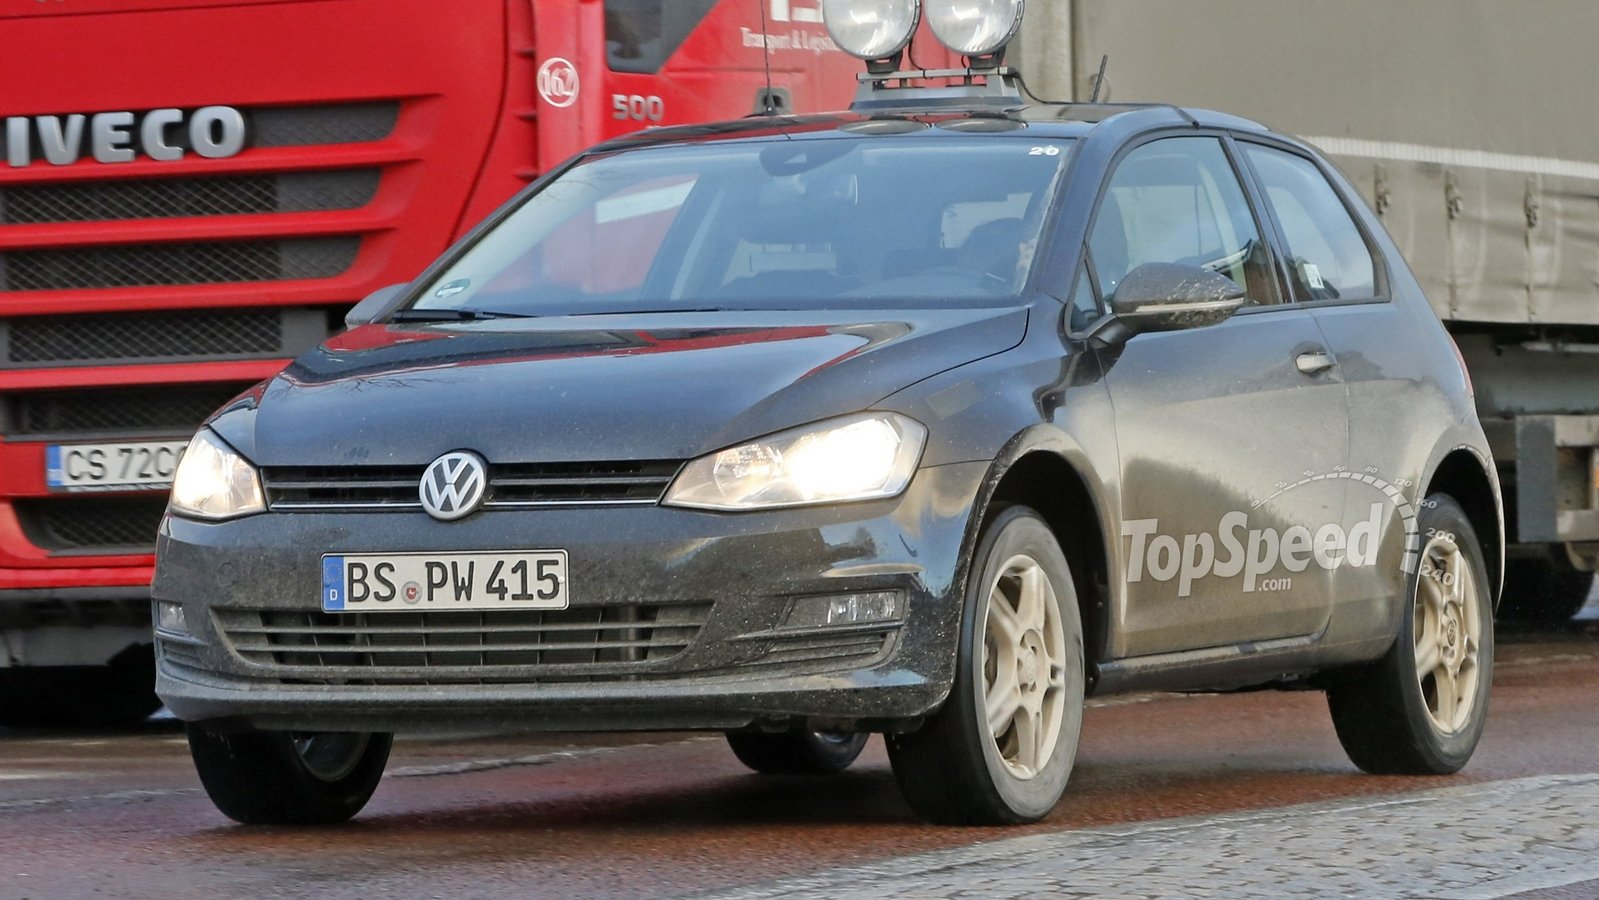 2019 Volkswagen Polo SUV - Picture 671672 | car review ...